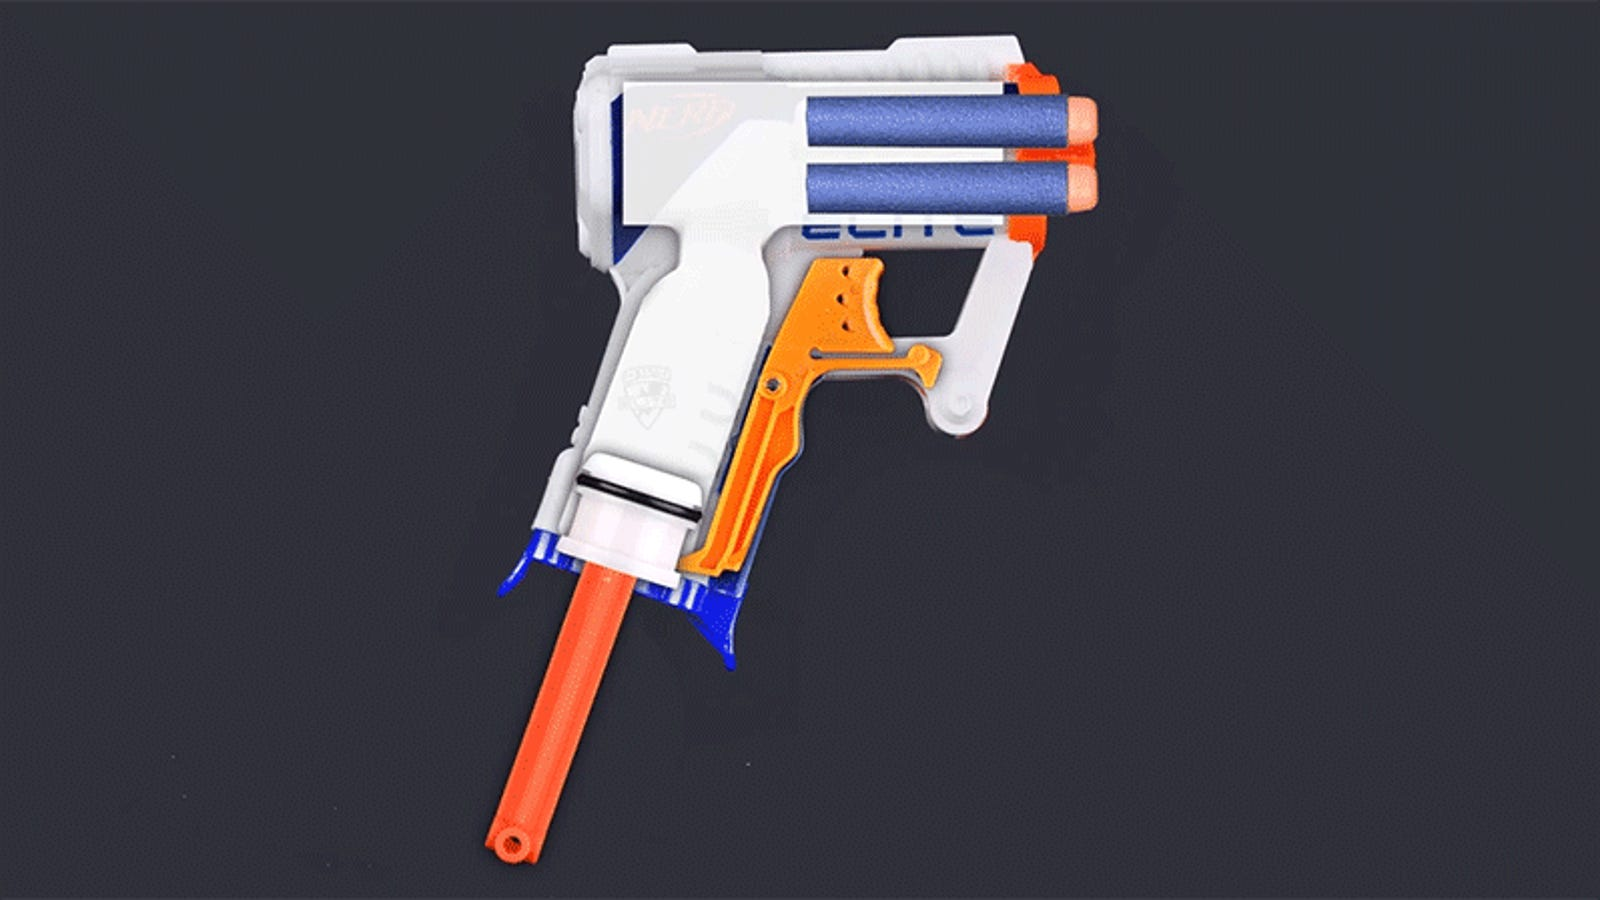 The Simple But Brilliant Engineering Behind a Nerf Blaster